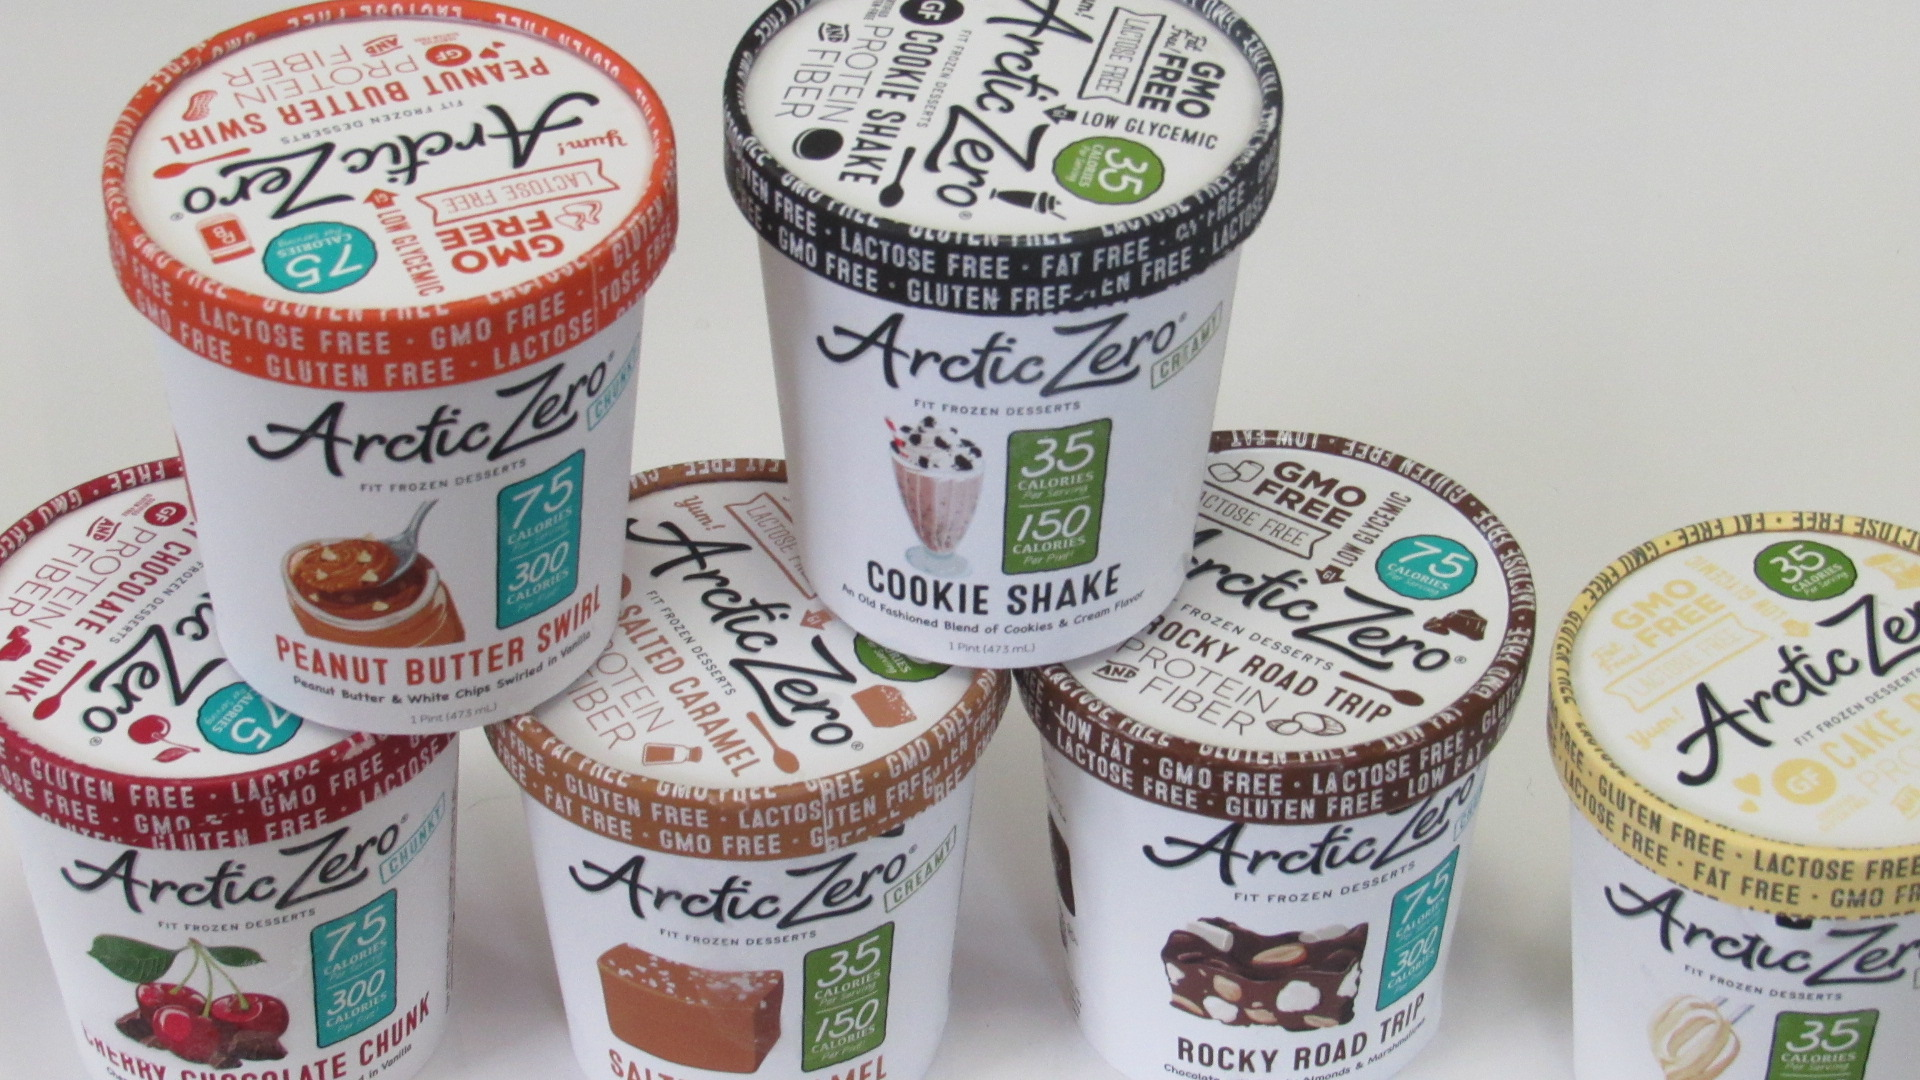 Chill Out With ARCTIC ZERO®Frozen Dessert #momsmeet #arcticzero